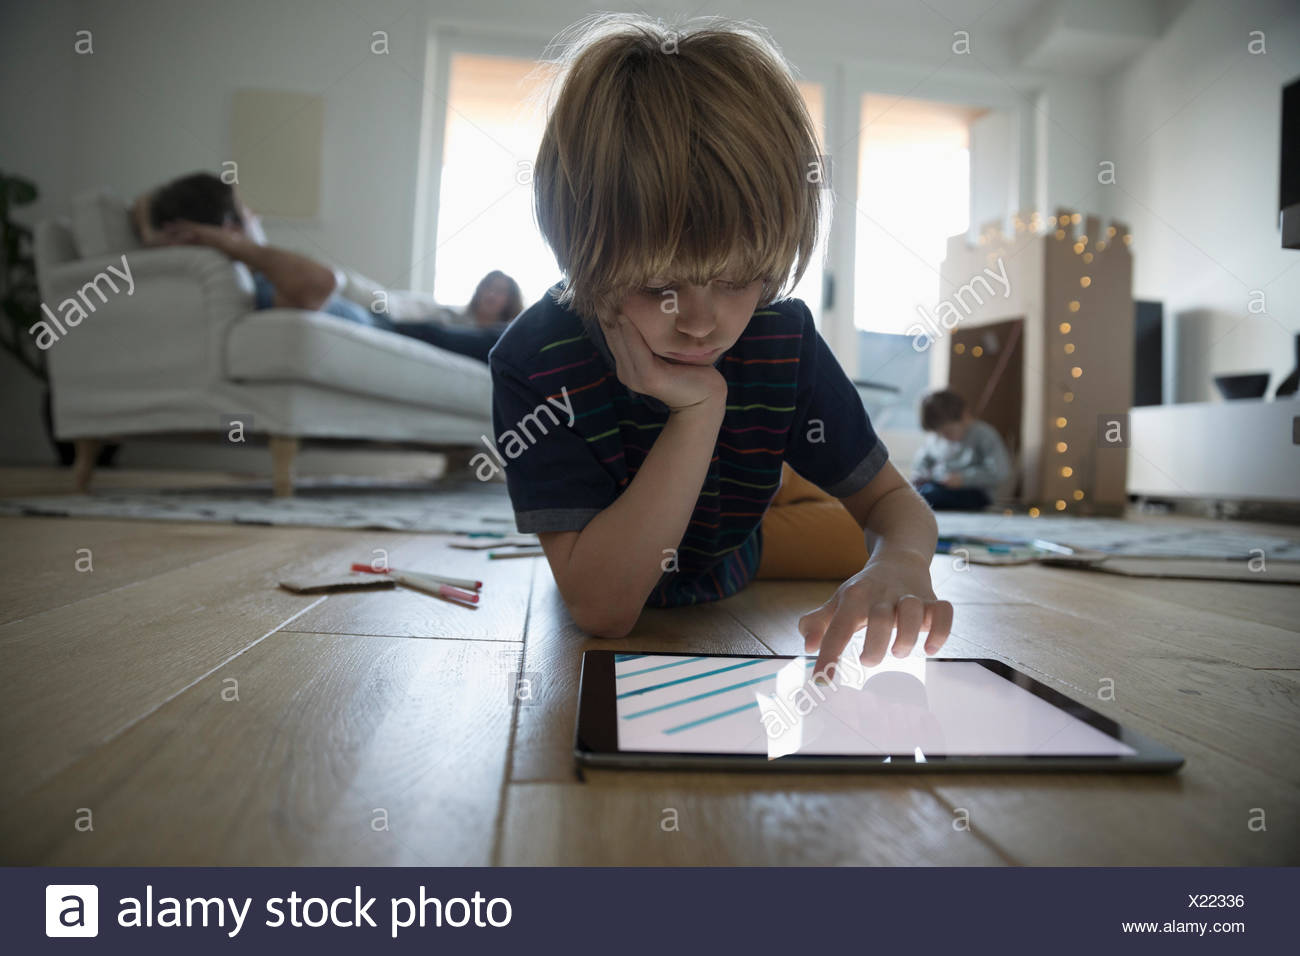 Focused boy drawing with digital tablet on living room floor - Stock Image